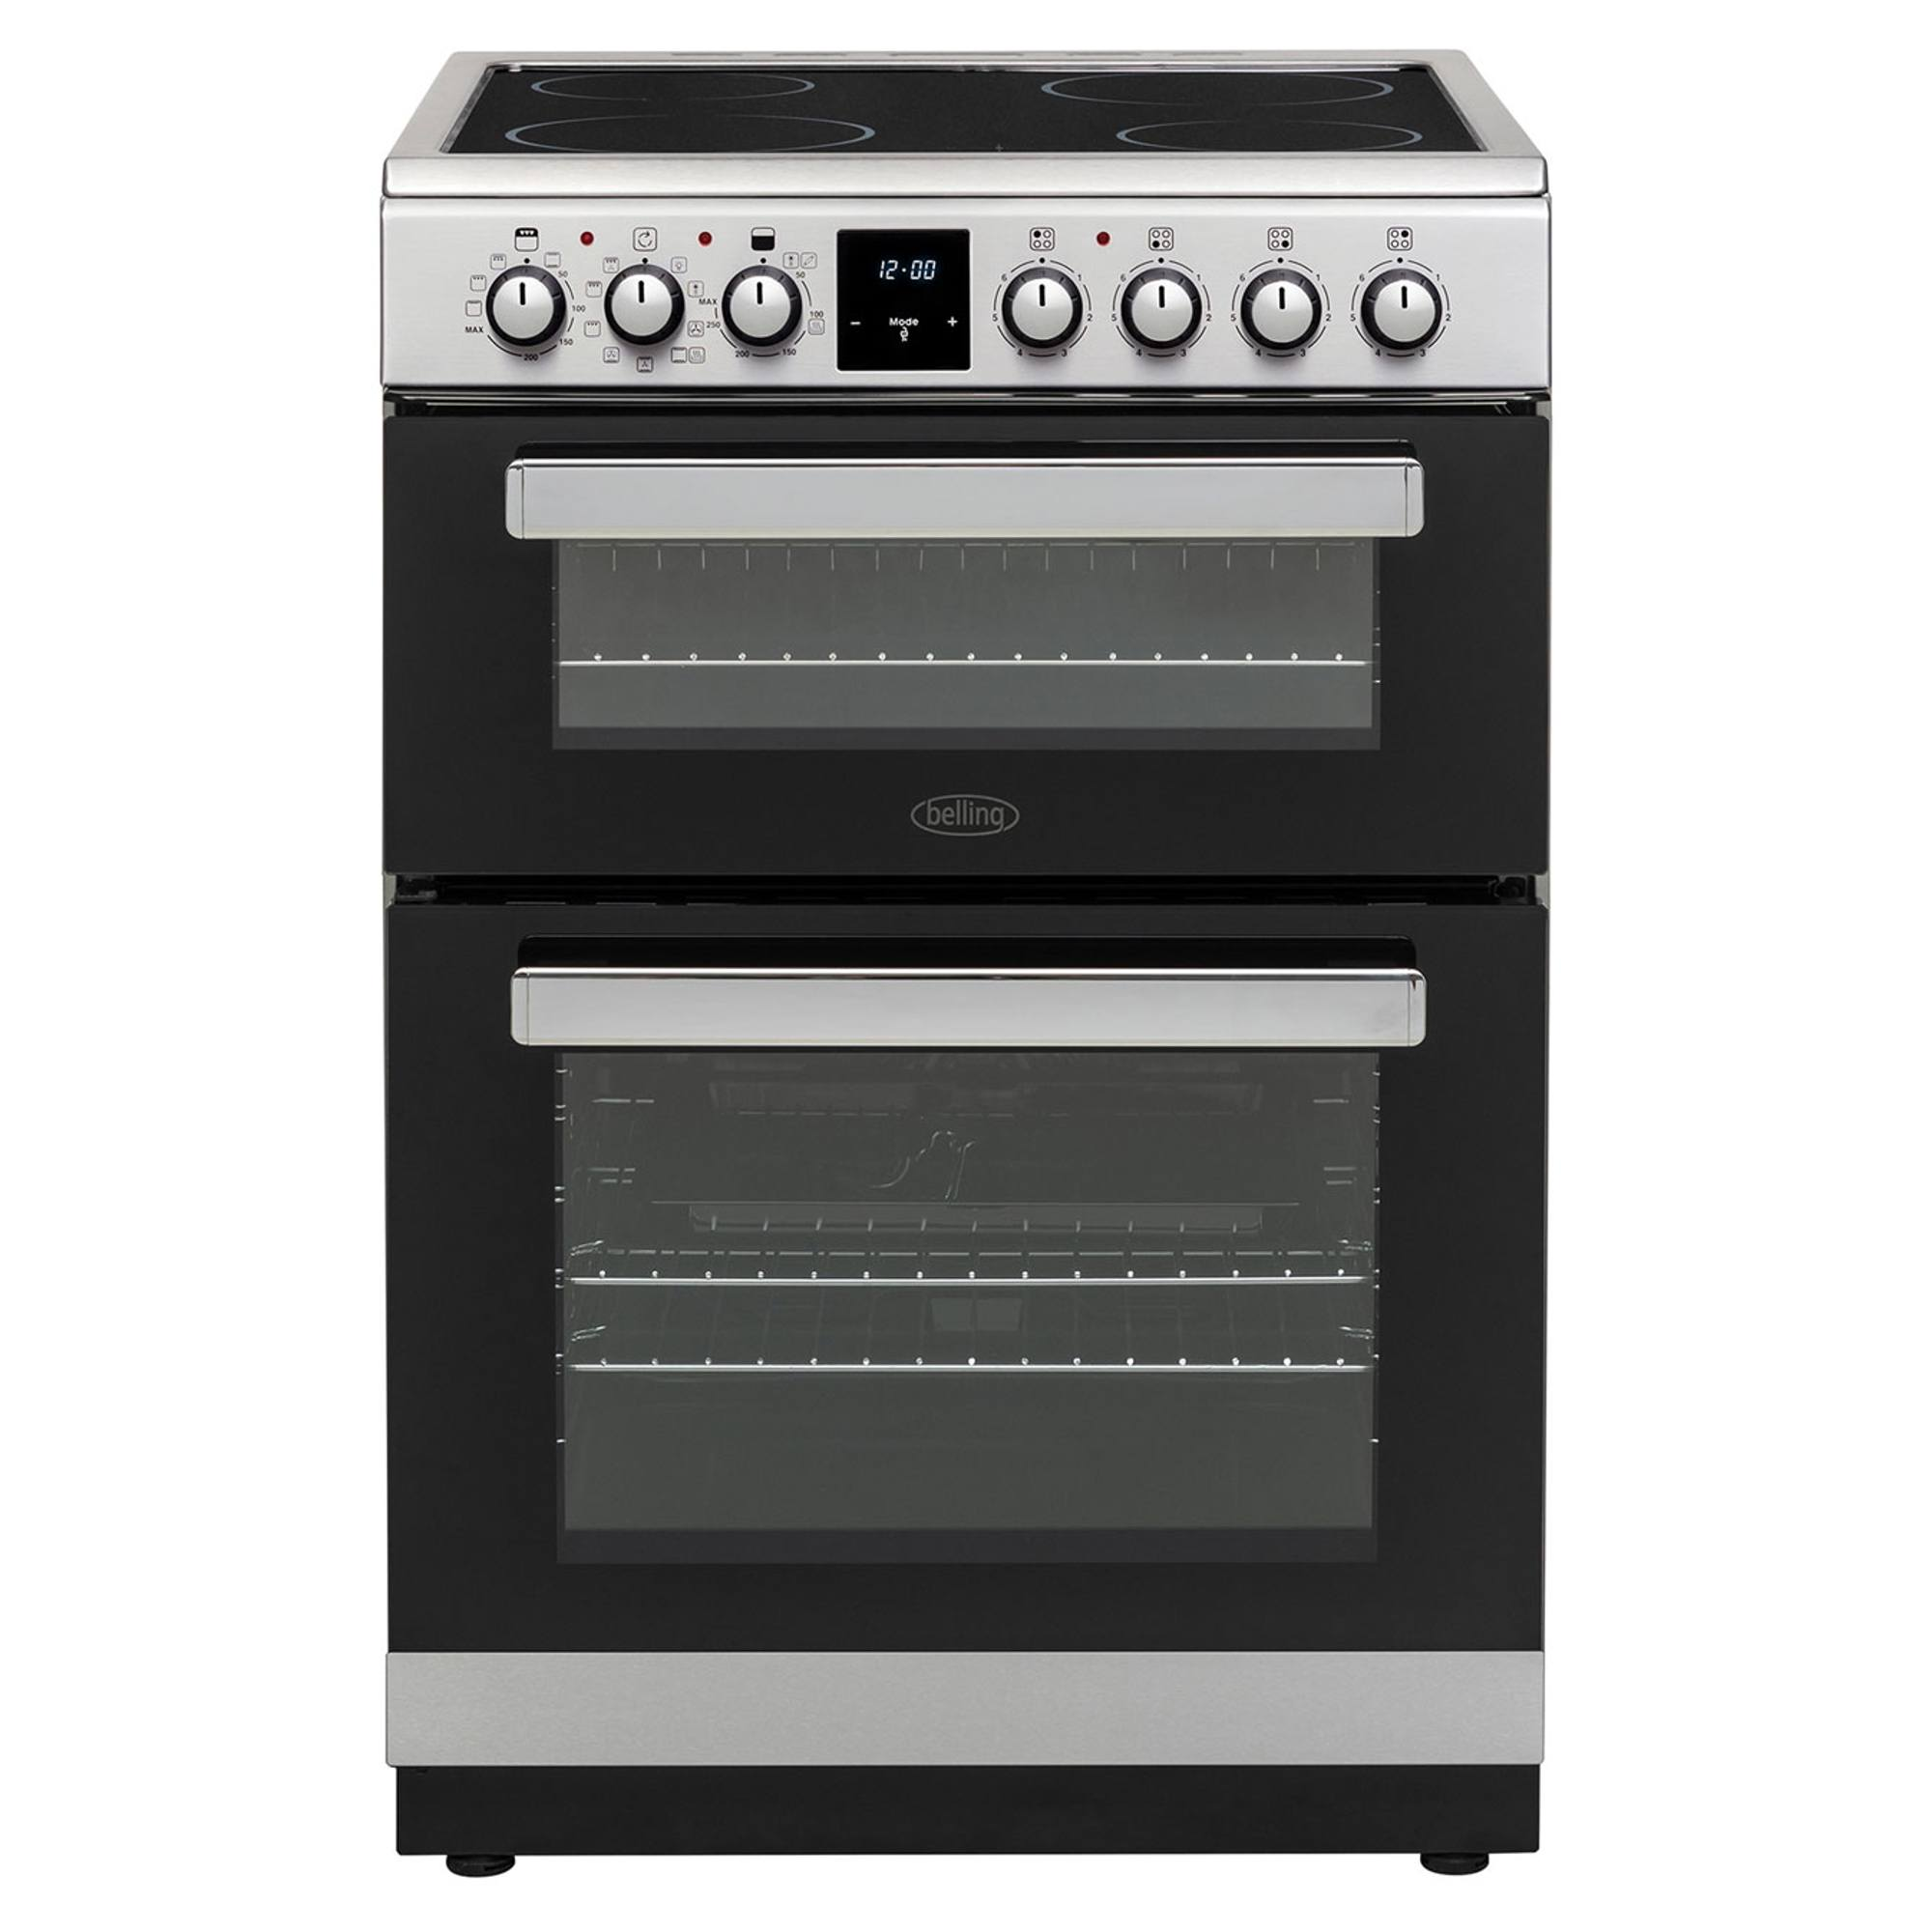 Belling Fse608mfc Electric Cooker With Ceramic Hob Hughes